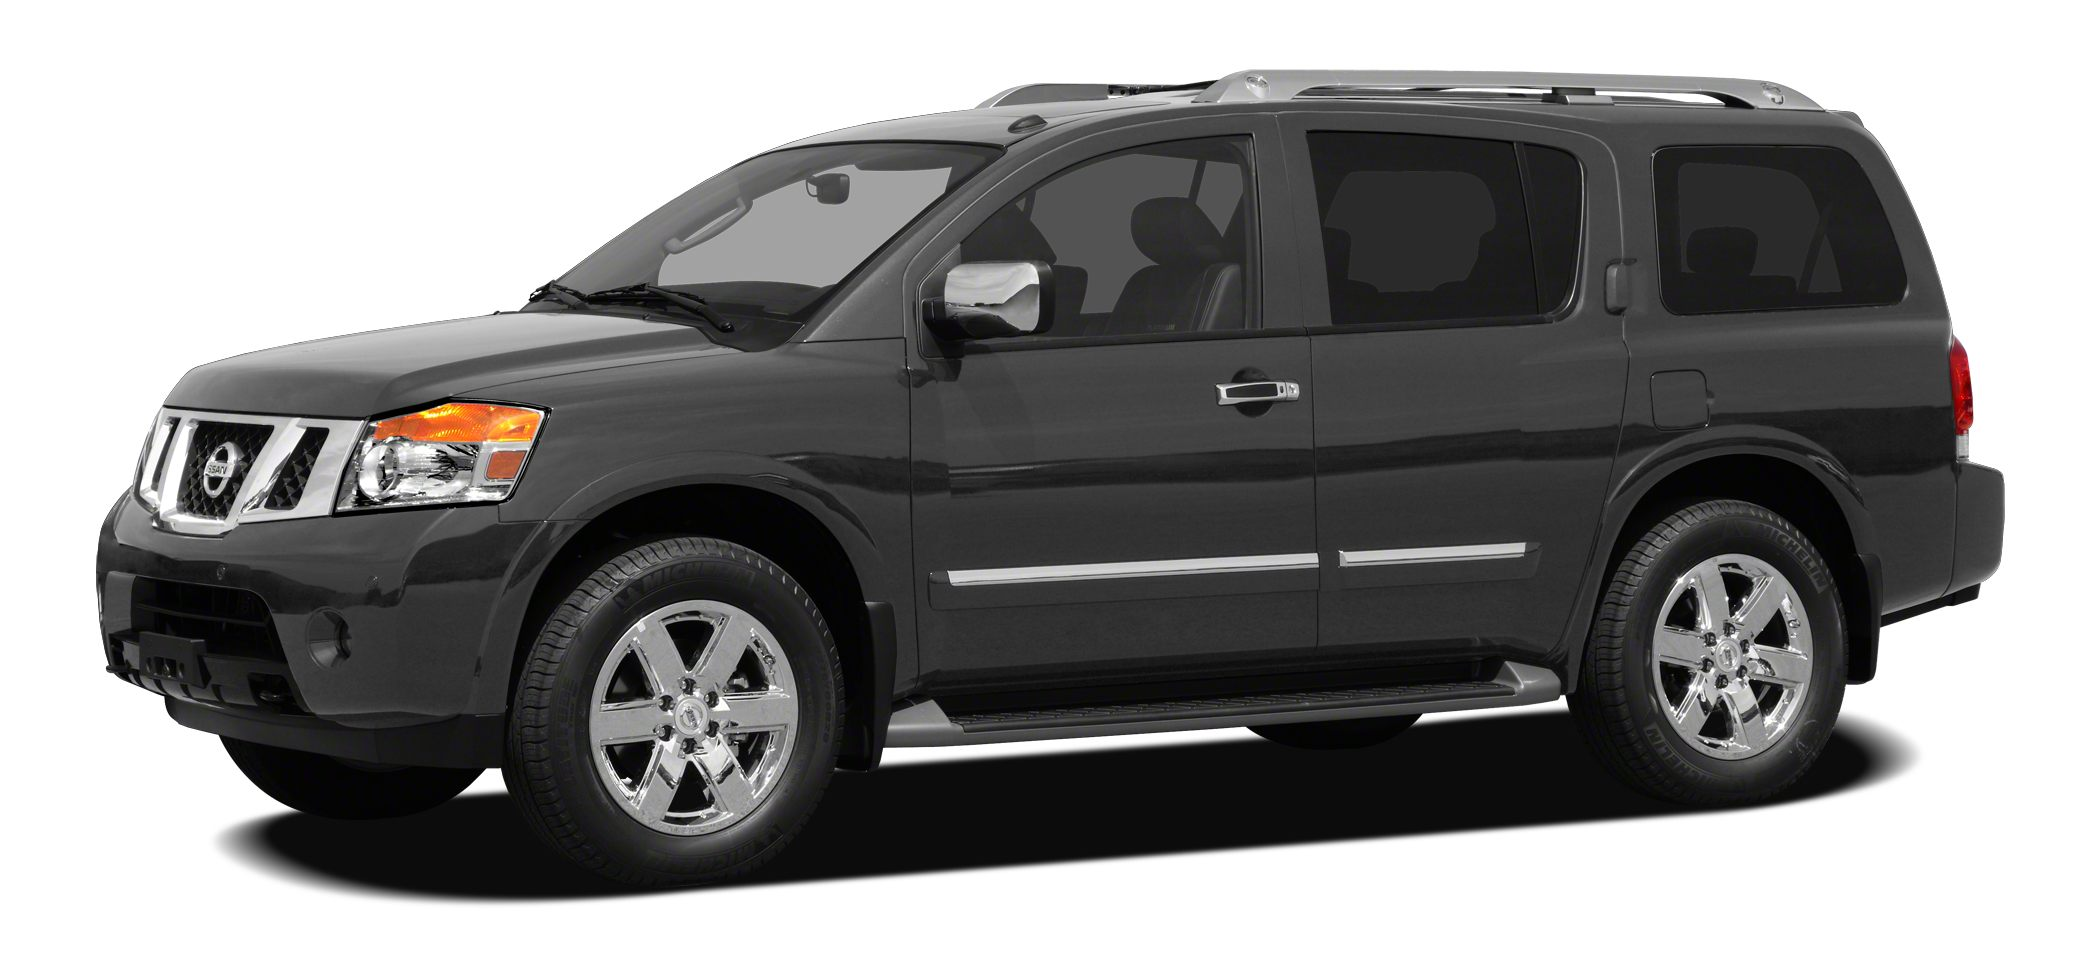 2012 Nissan Armada Platinum Prices are PLUS tax tag title fee 799 Pre-Delivery Service Fee a